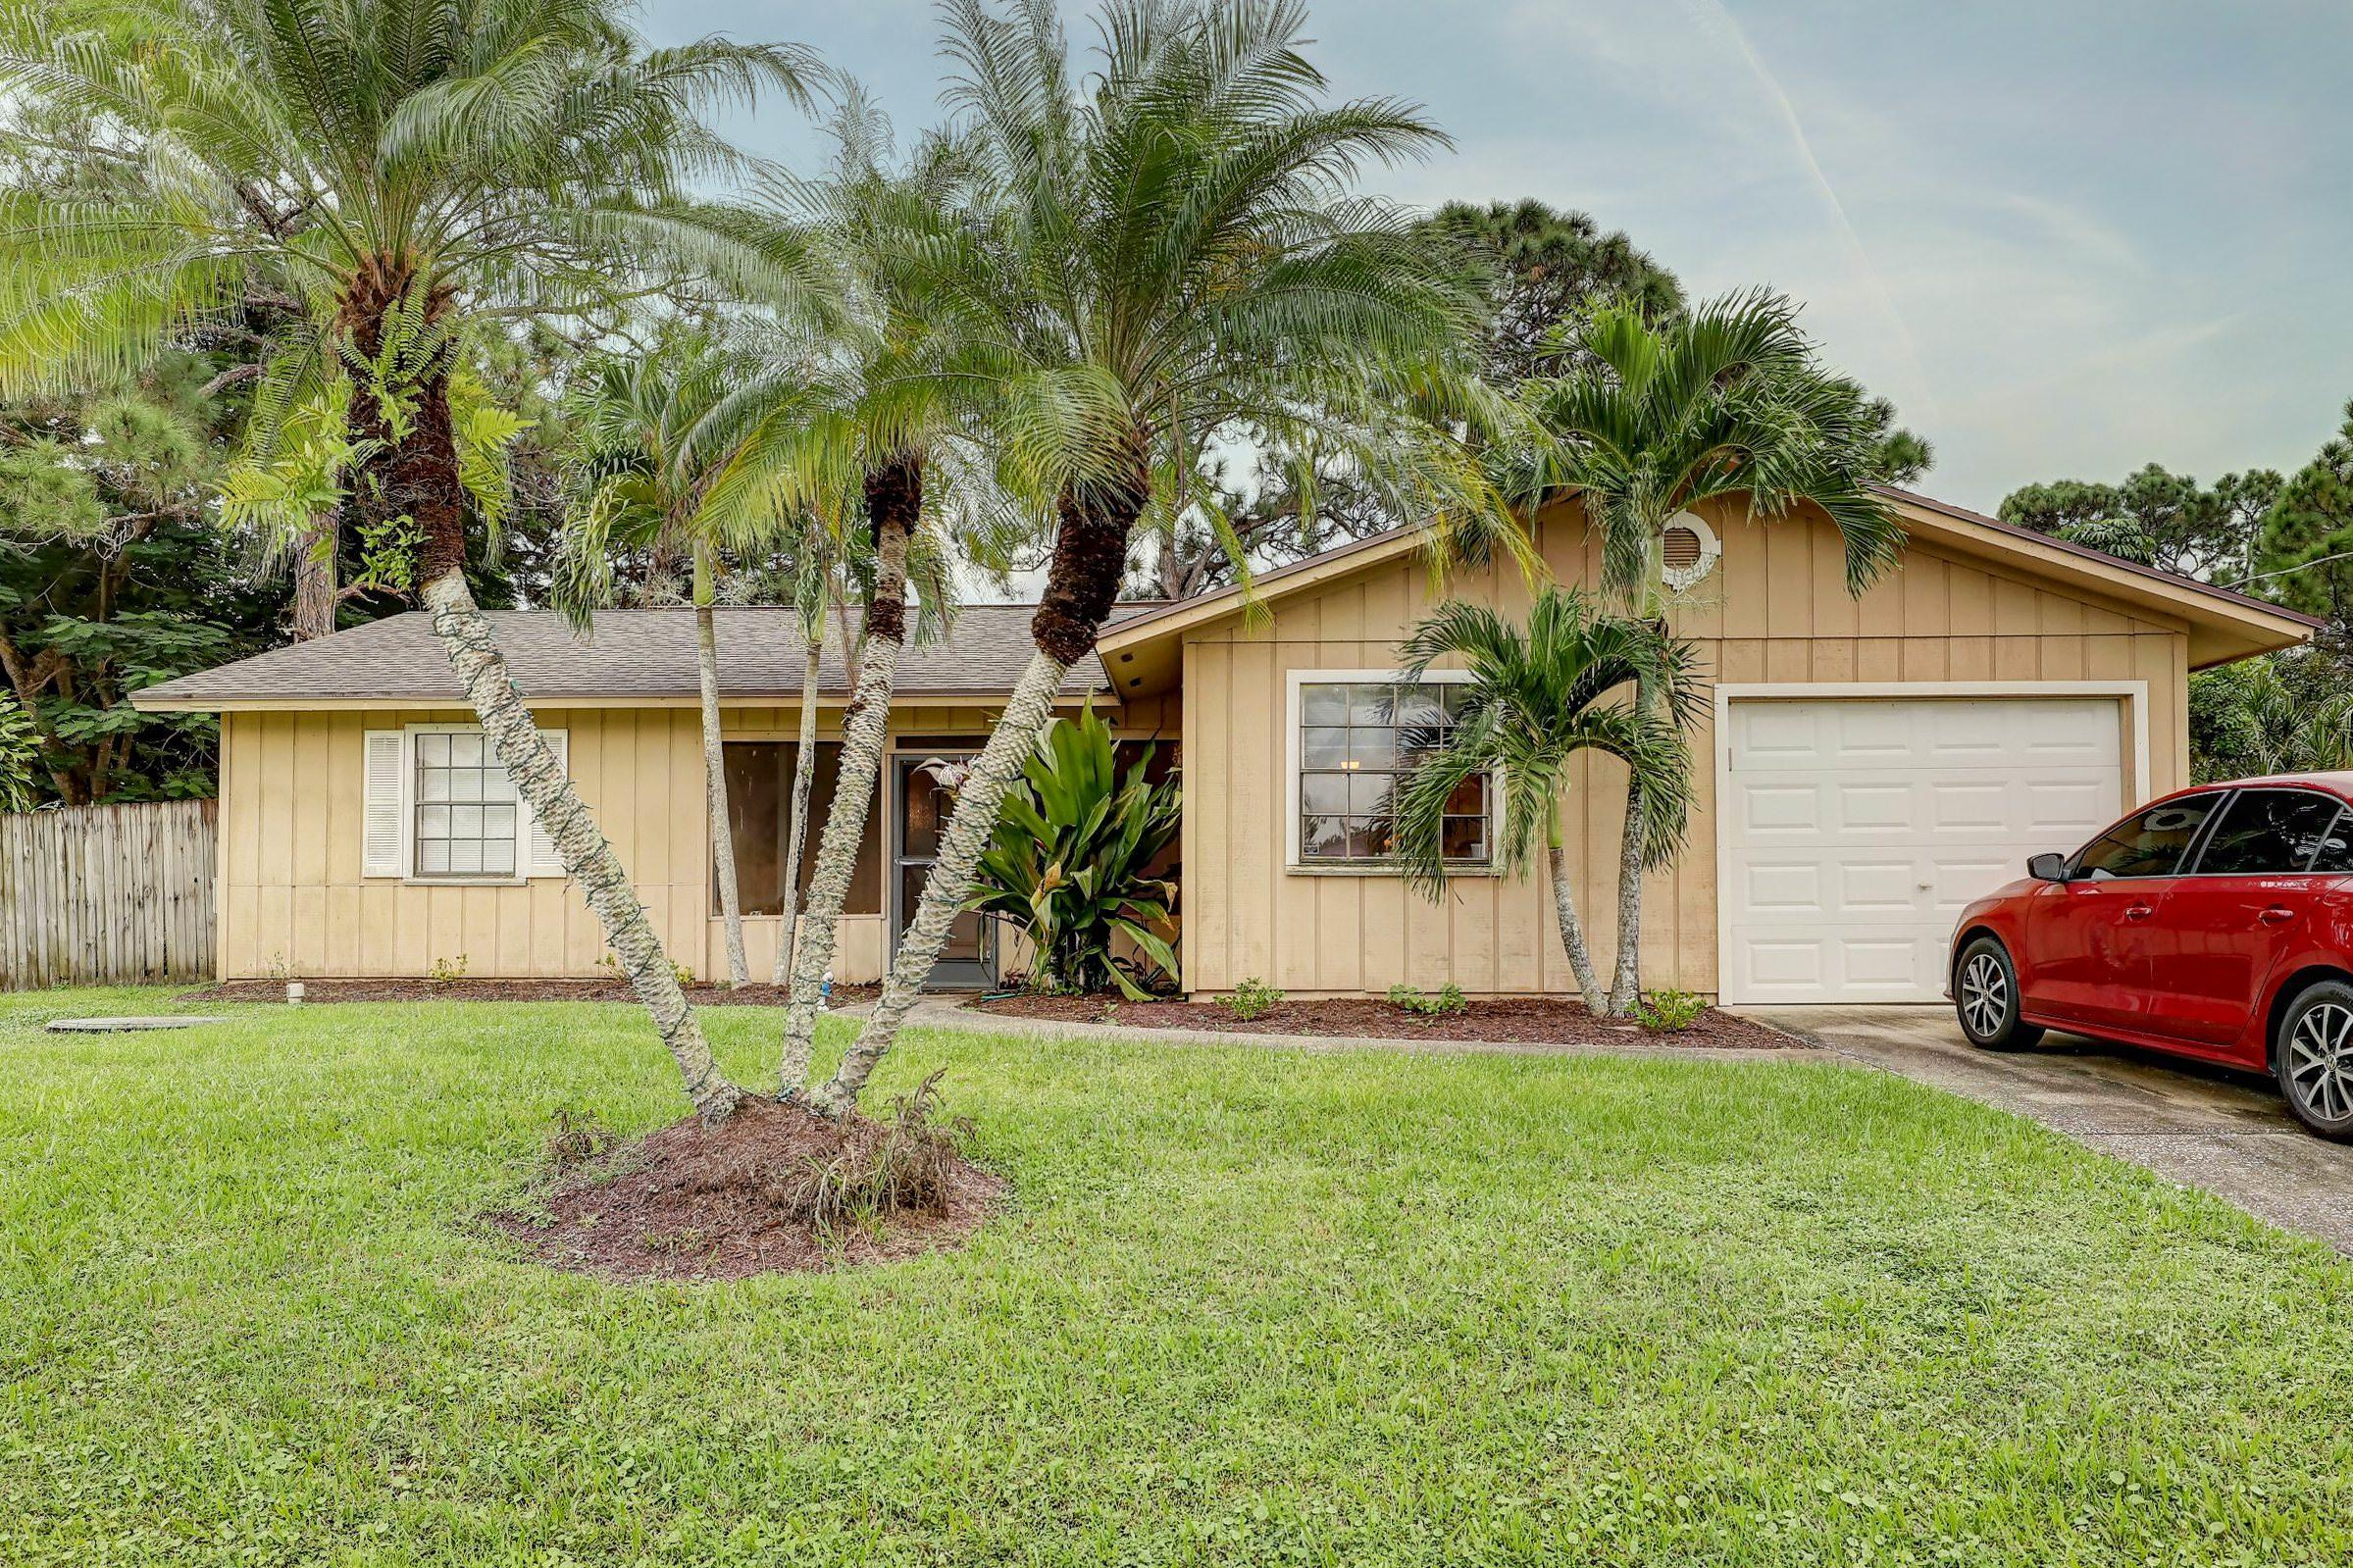 114 Sw Christmas Terrace, Port Saint Lucie, FL 34984